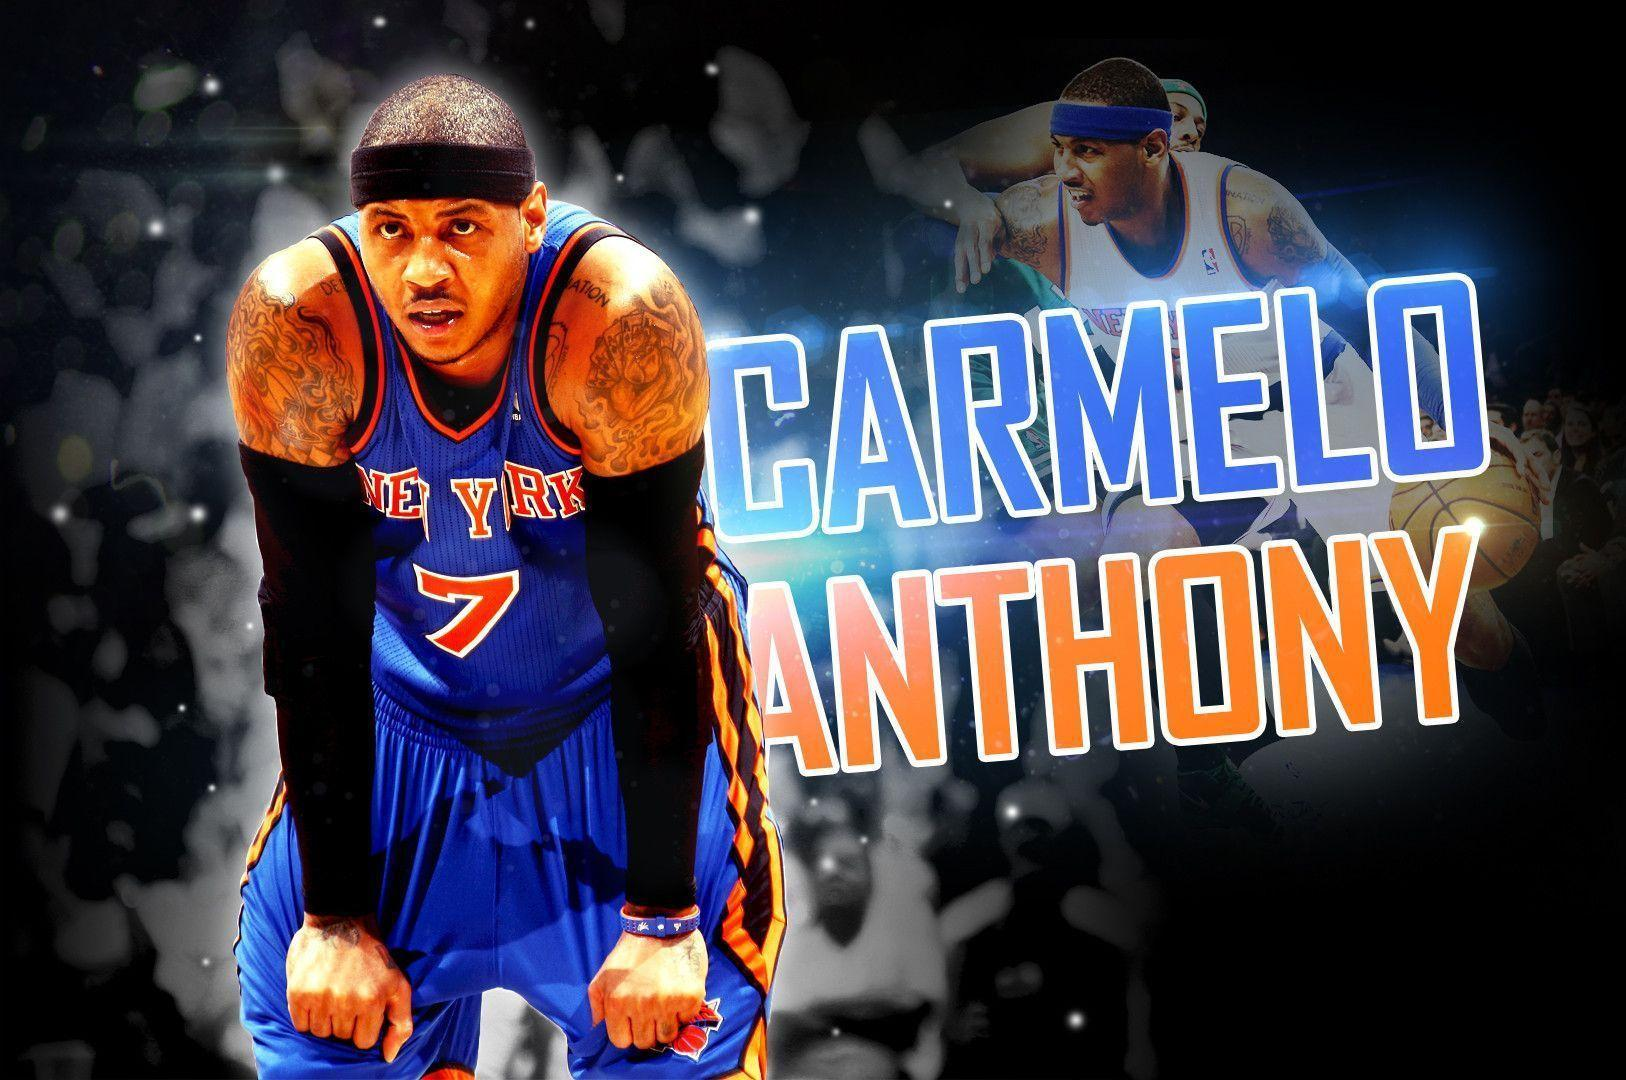 Carmelo Anthony by TheHoodgirl